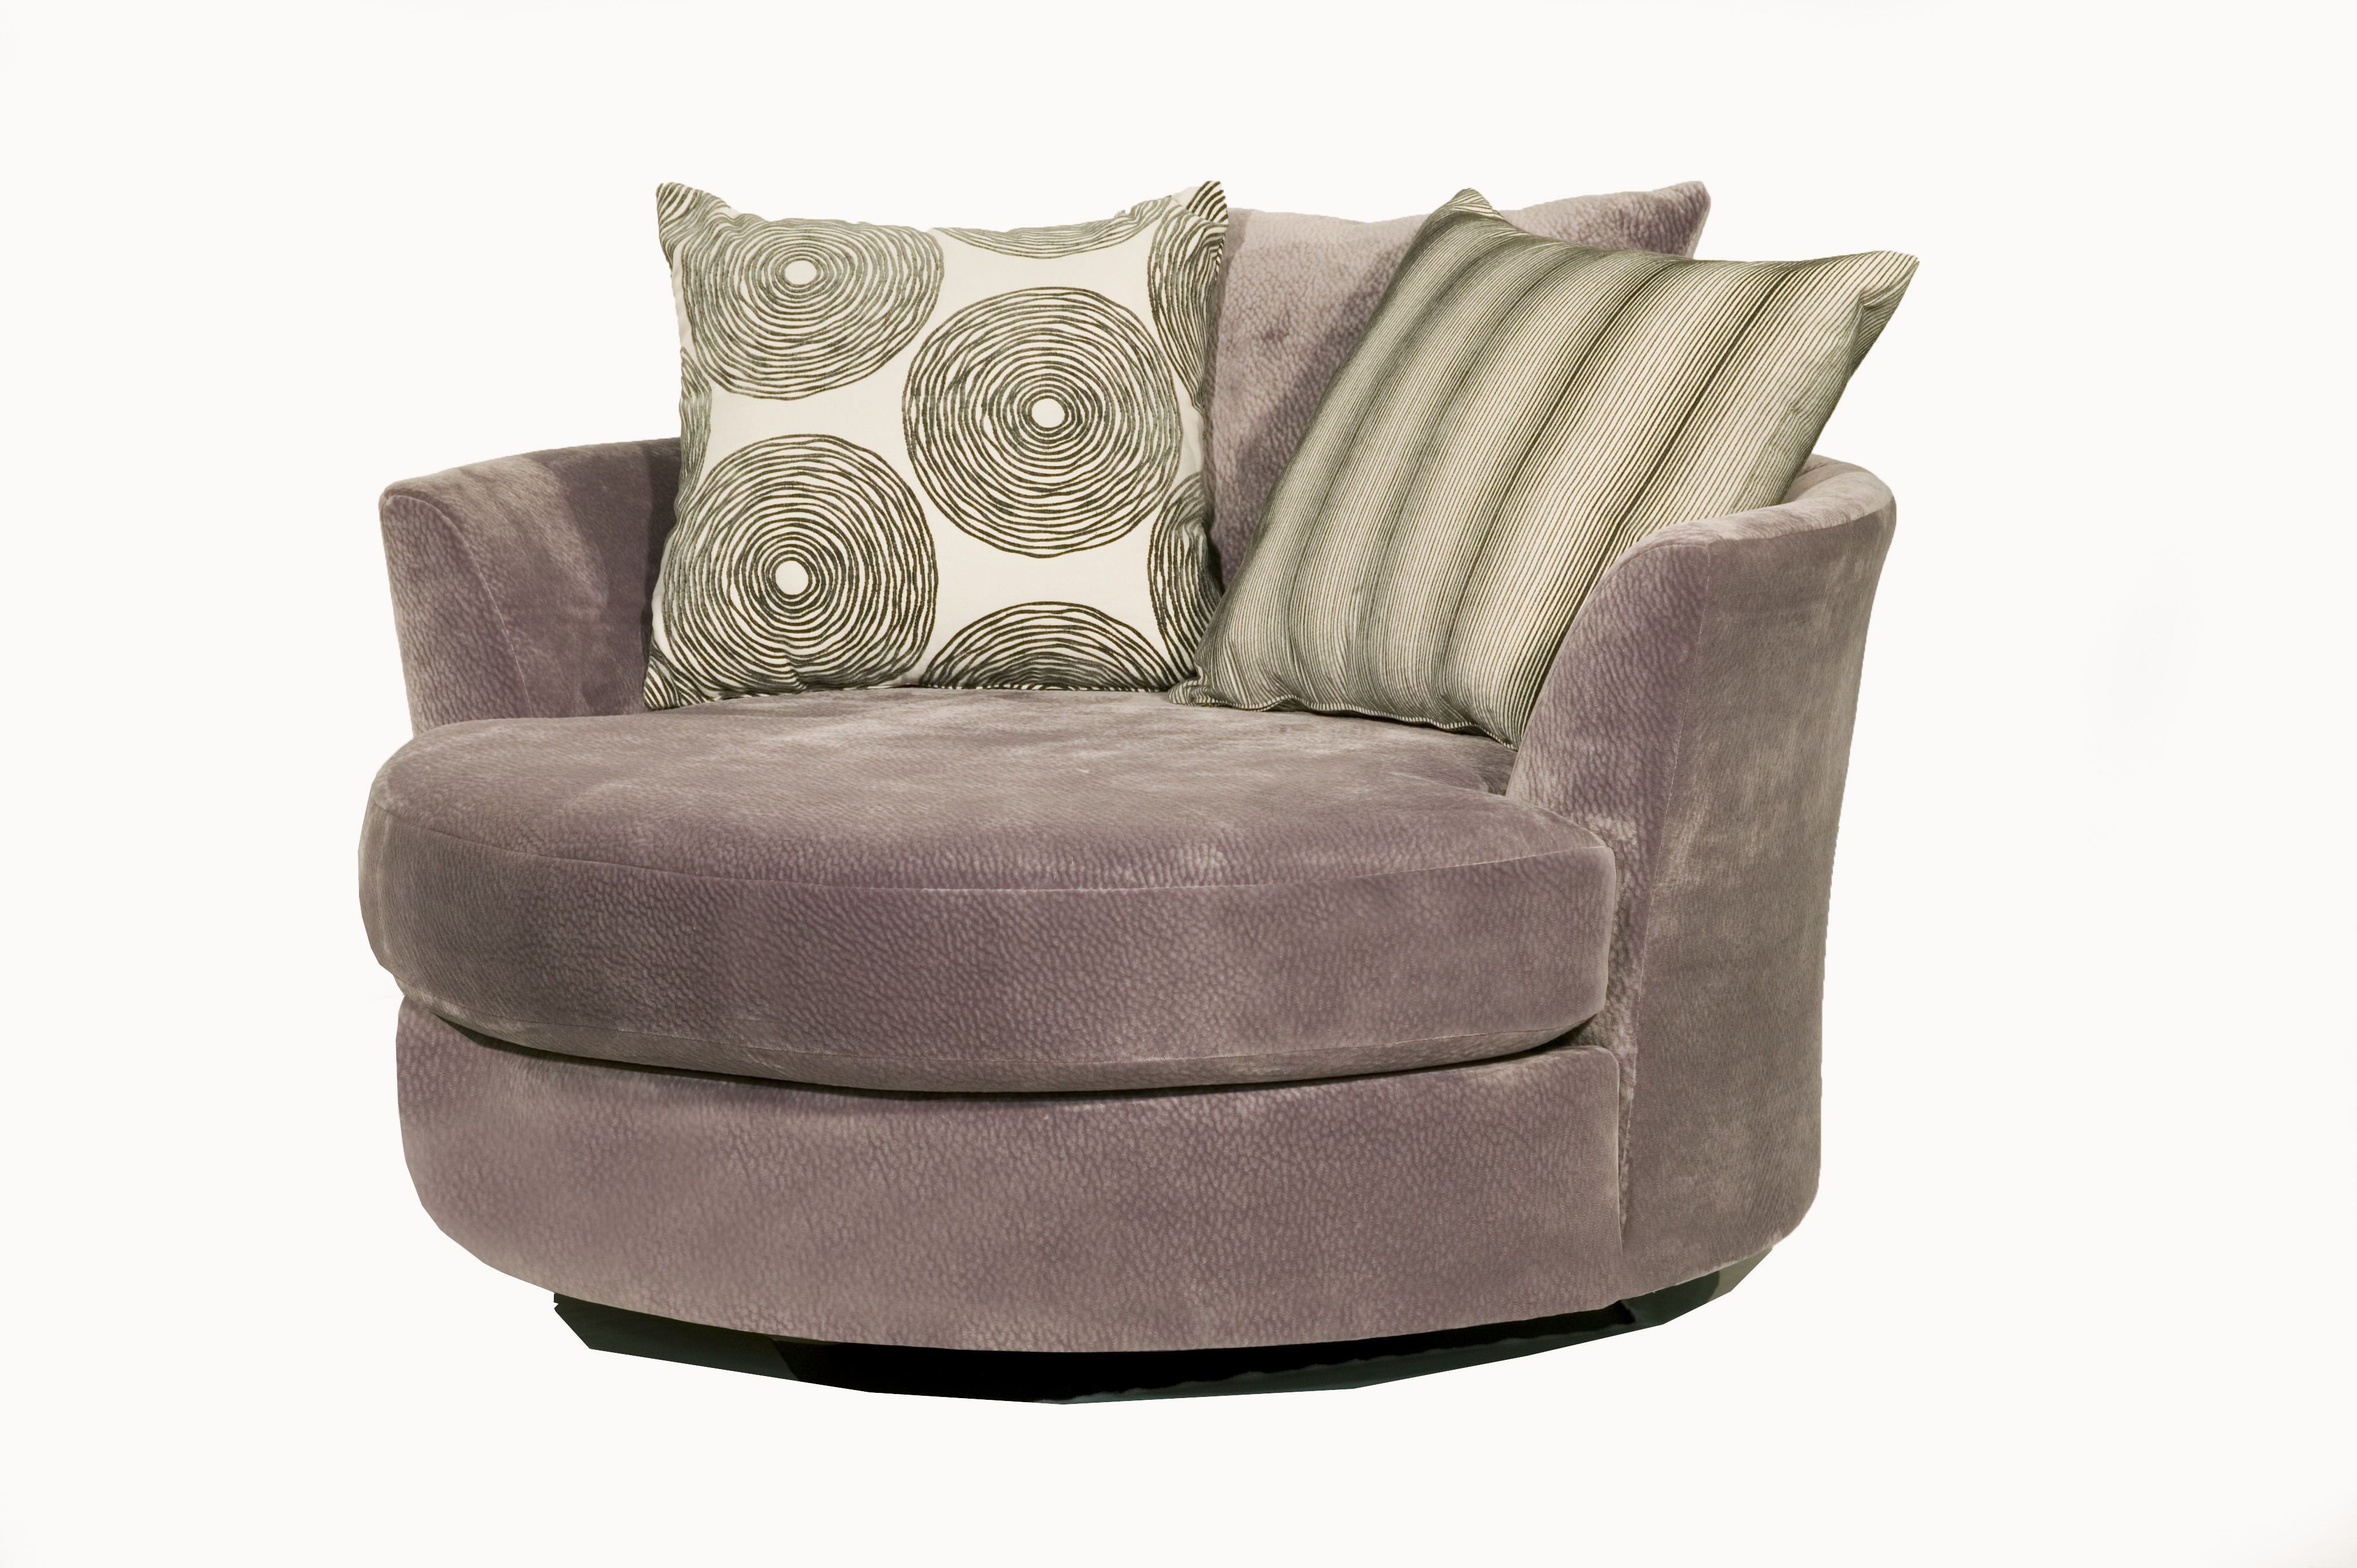 Robert Michael 9645 Cuddler Swivel Chair With Most Up To Date Cuddler Swivel Sofa Chairs (View 12 of 15)